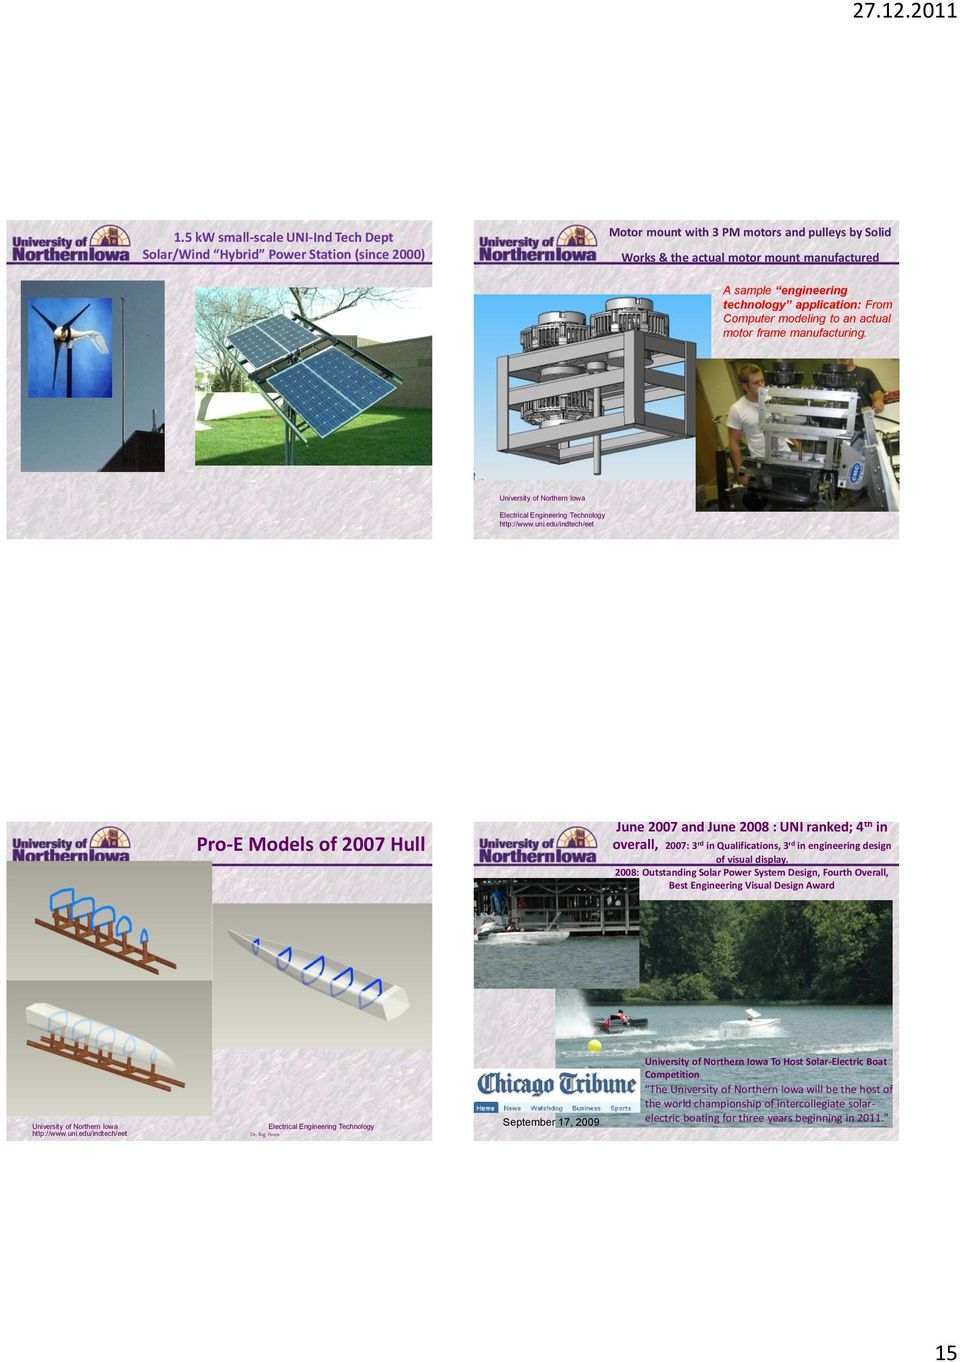 Pro-E Models of 2007 Hull June 2007 and June 2008 : UNI ranked; 4 th in overall, 2007: 3 rd in Qualifications, 3 rd in engineering design of visual display.